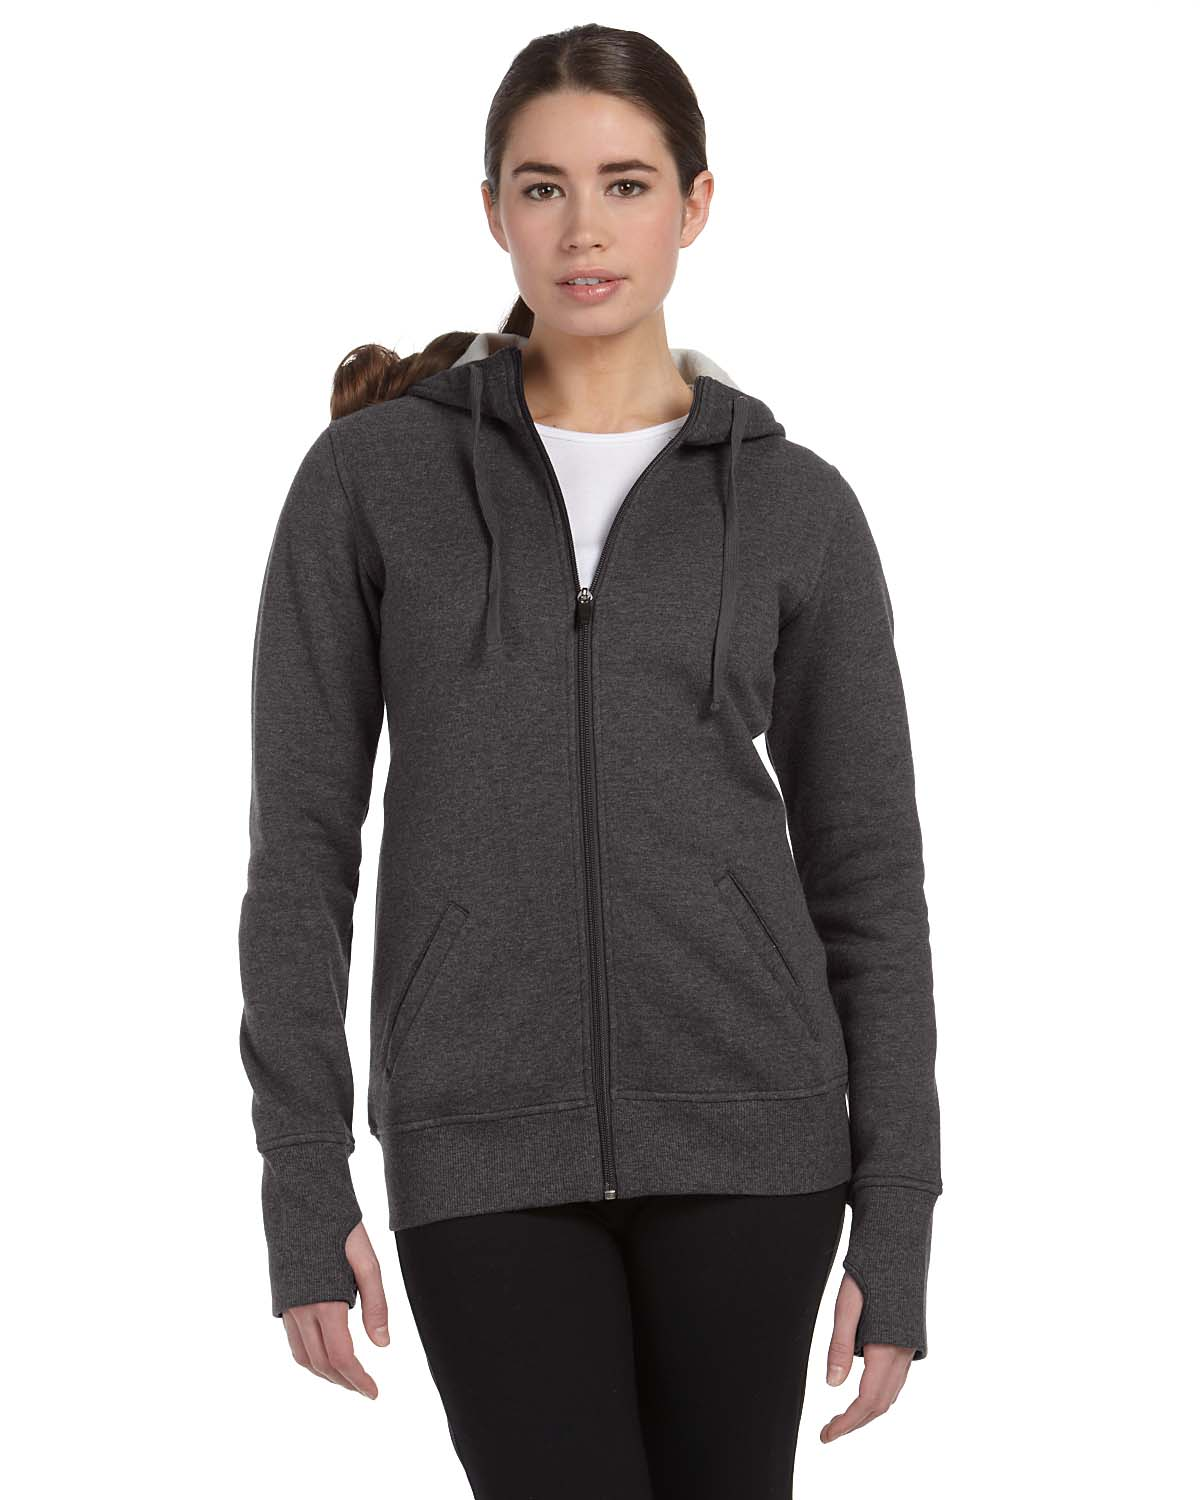 Alo Sport Ladies Performance Fleece Full-Zip Hoodie With Runners